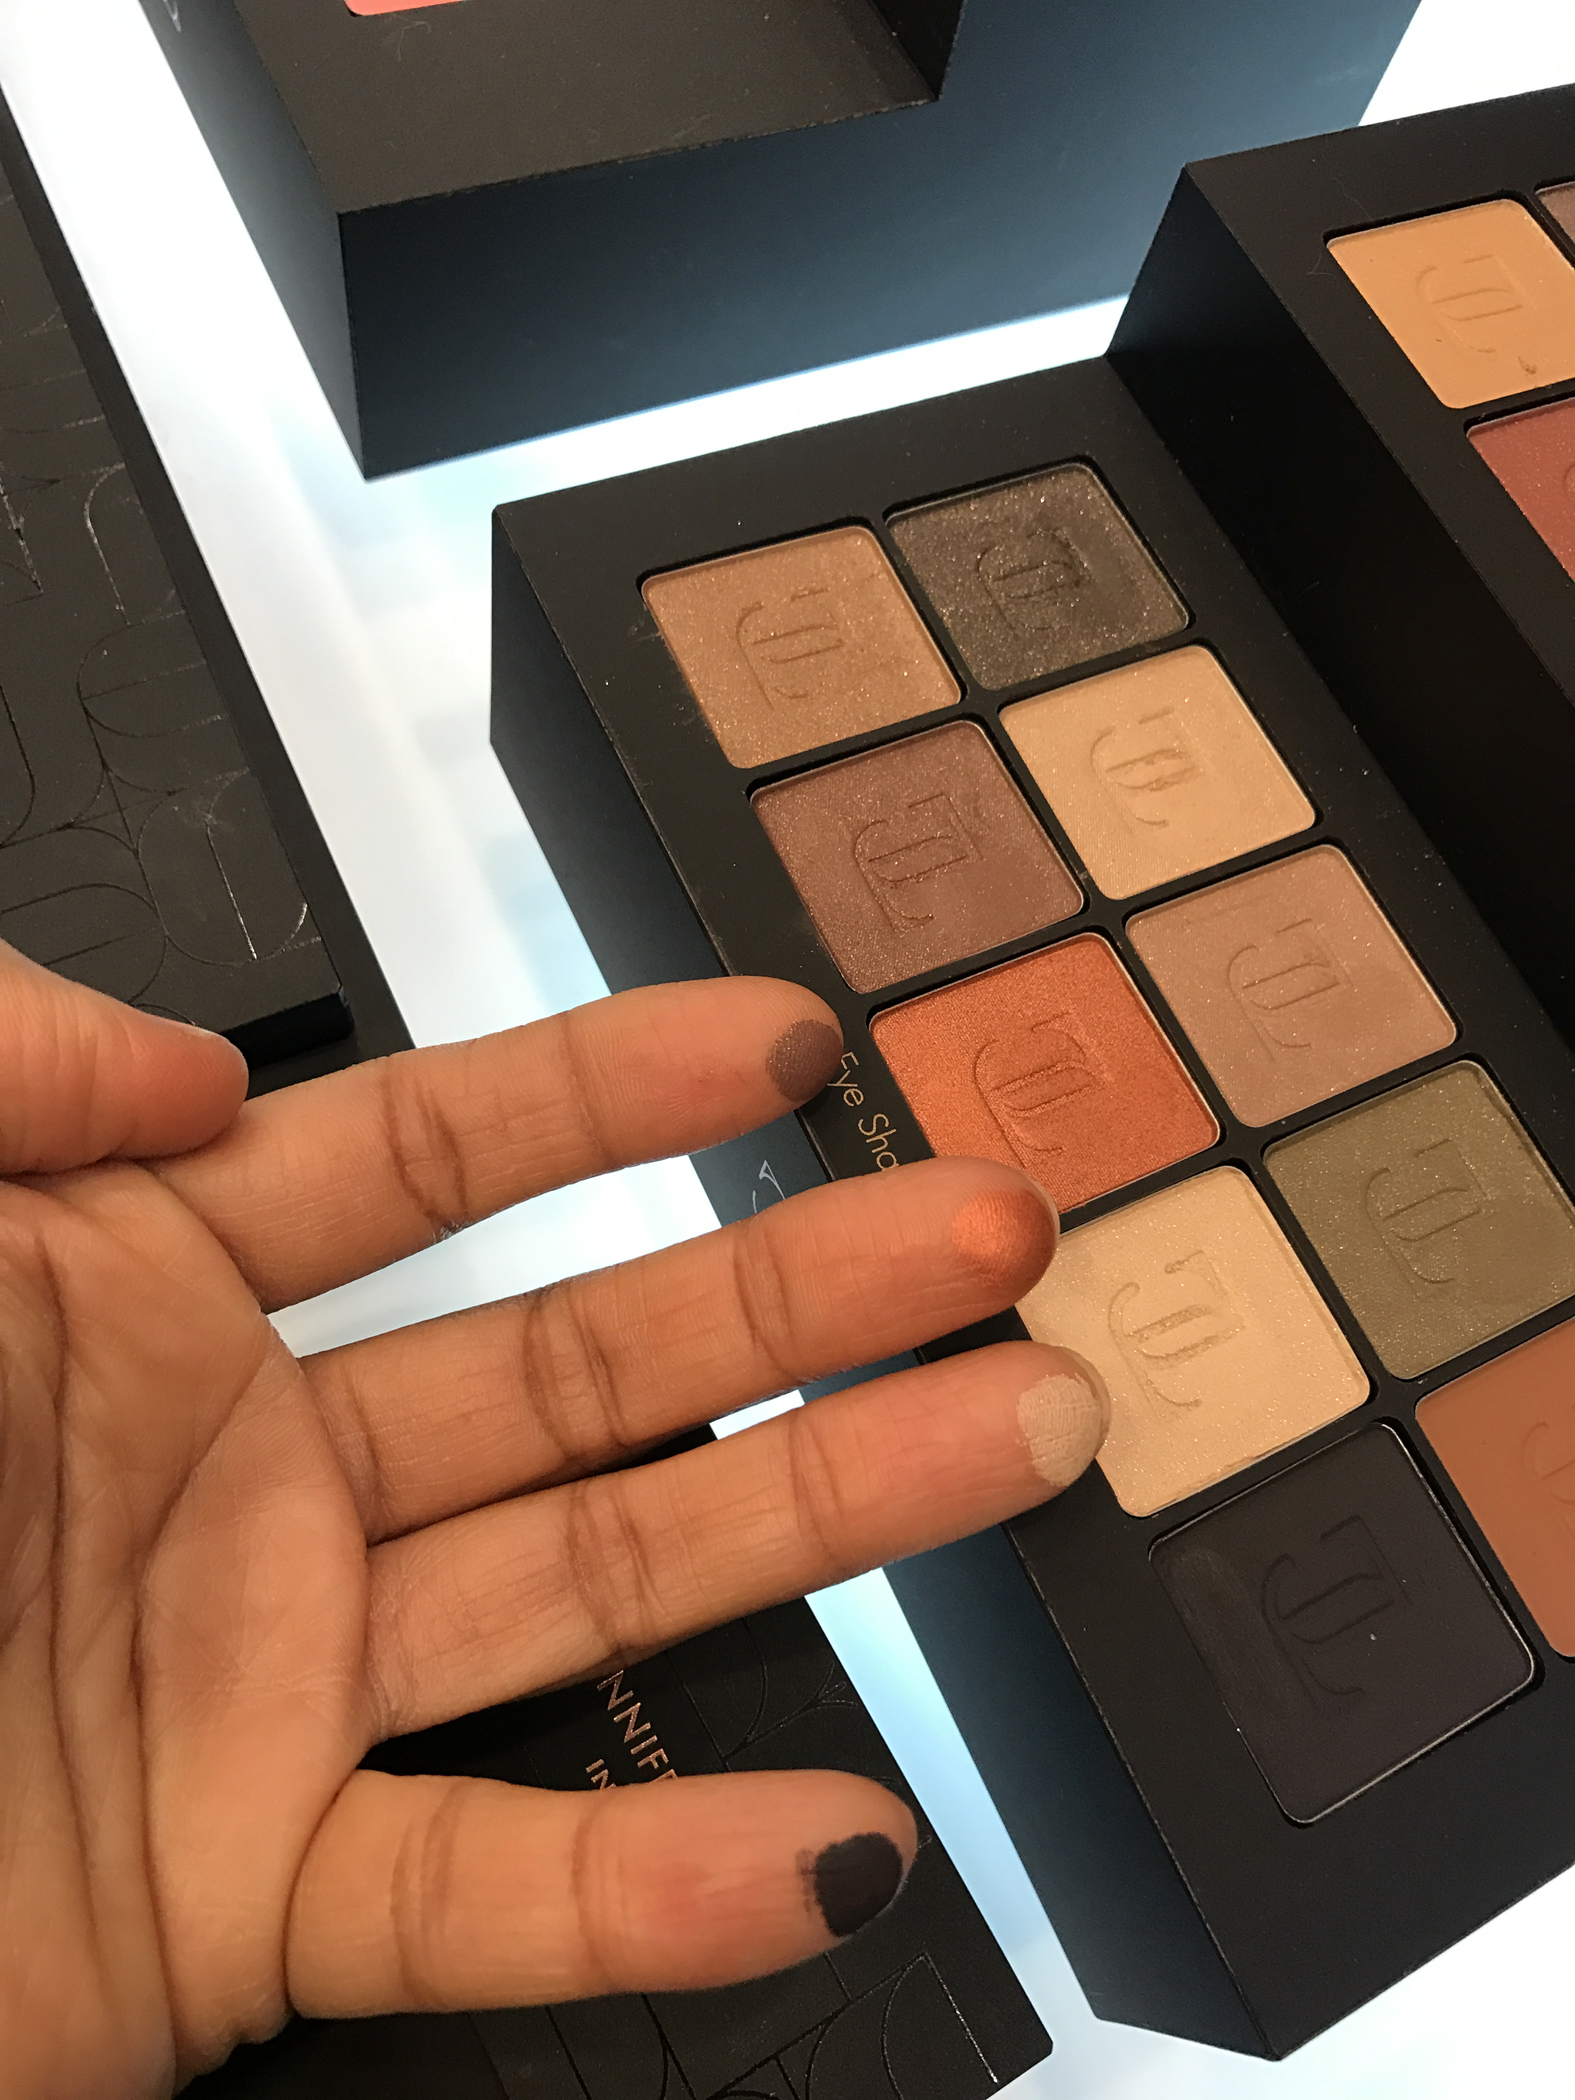 JLo x INGLOT Cosmetics launch